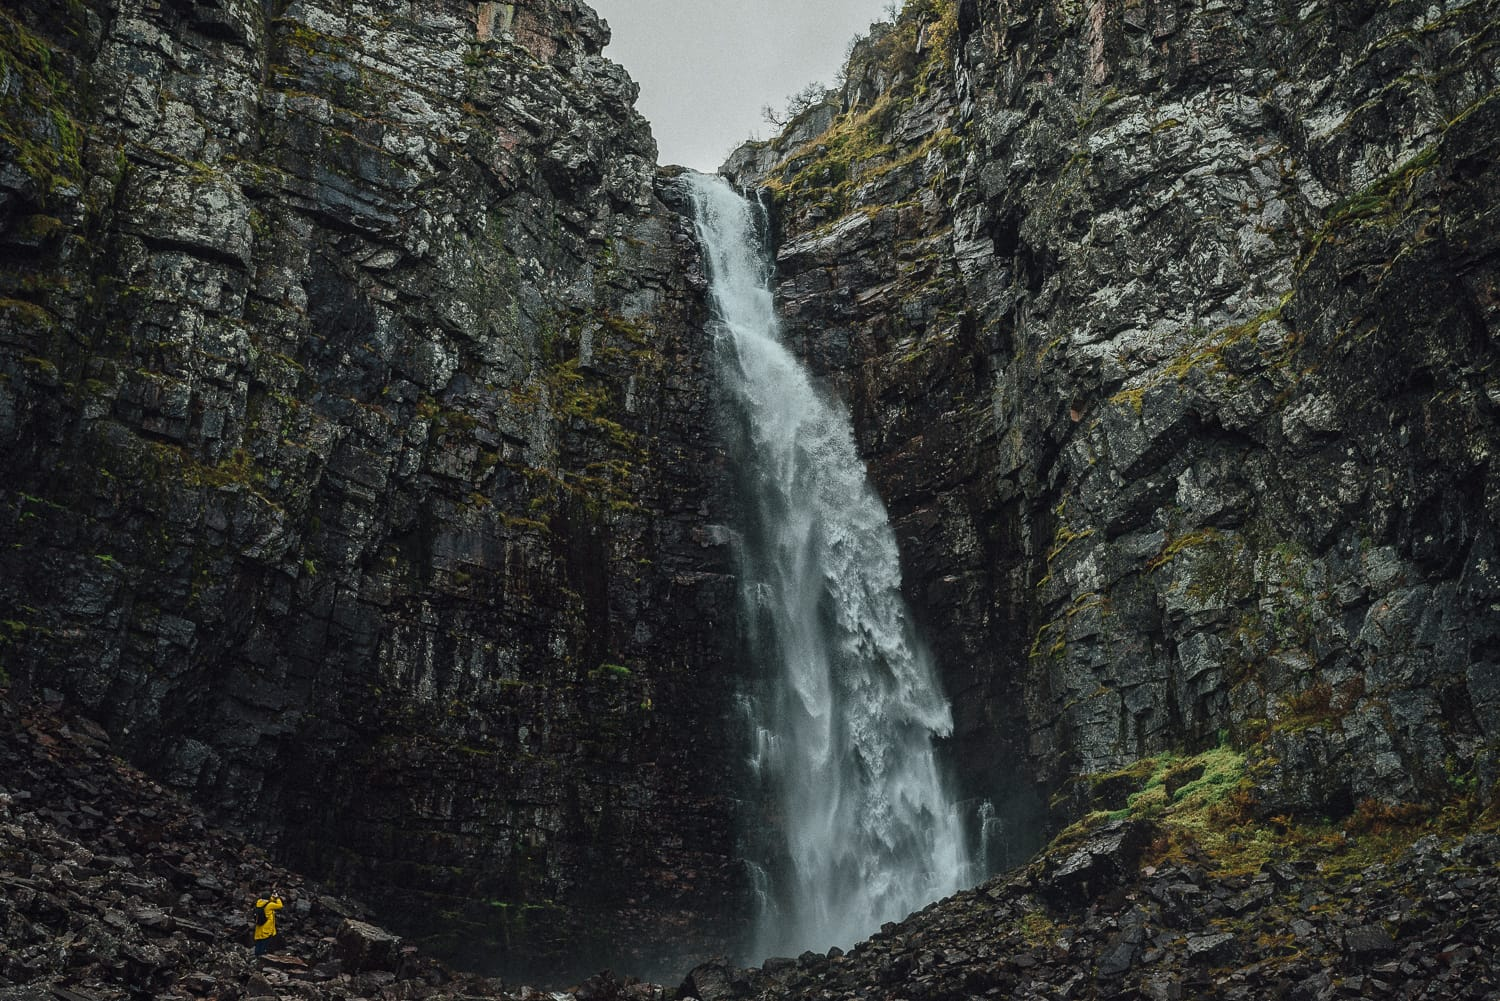 a large waterfall in Sweden